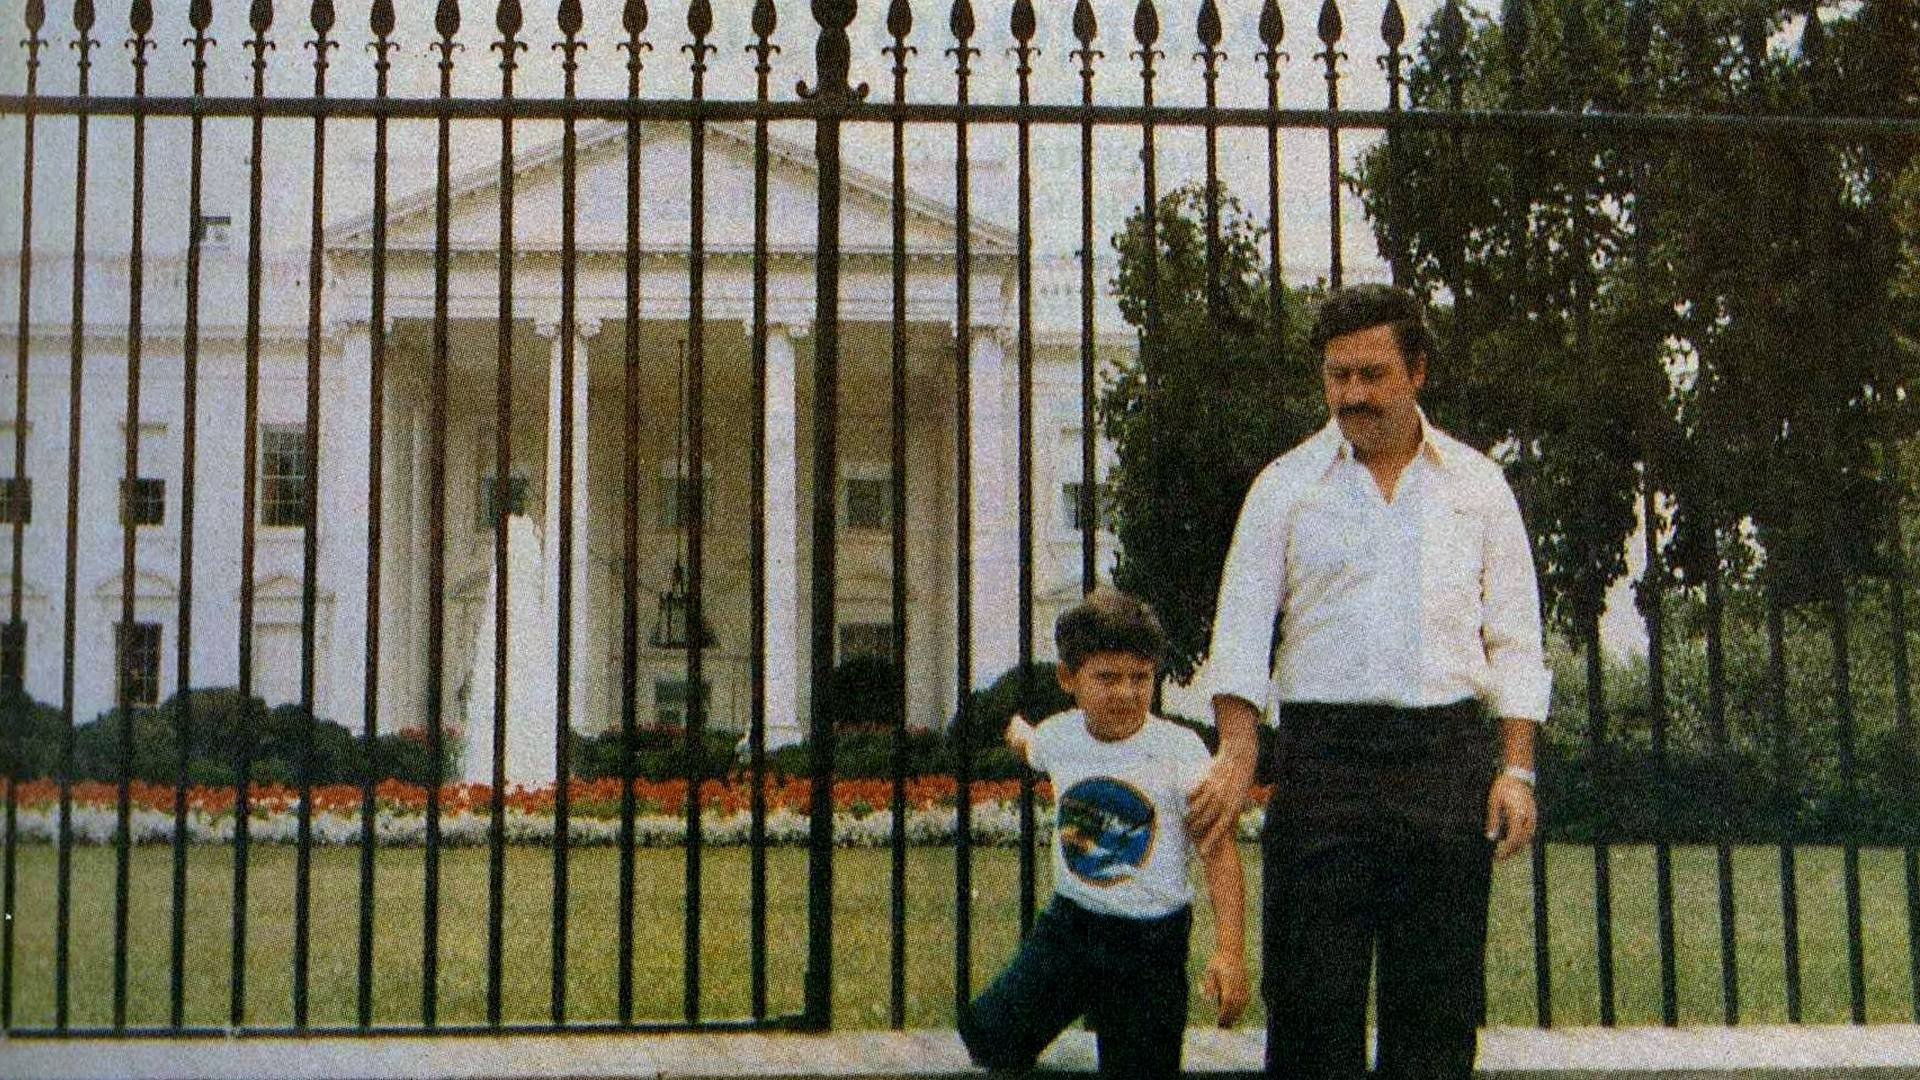 Notorious drug lord Pablo Escobar and his son in front of the White House.